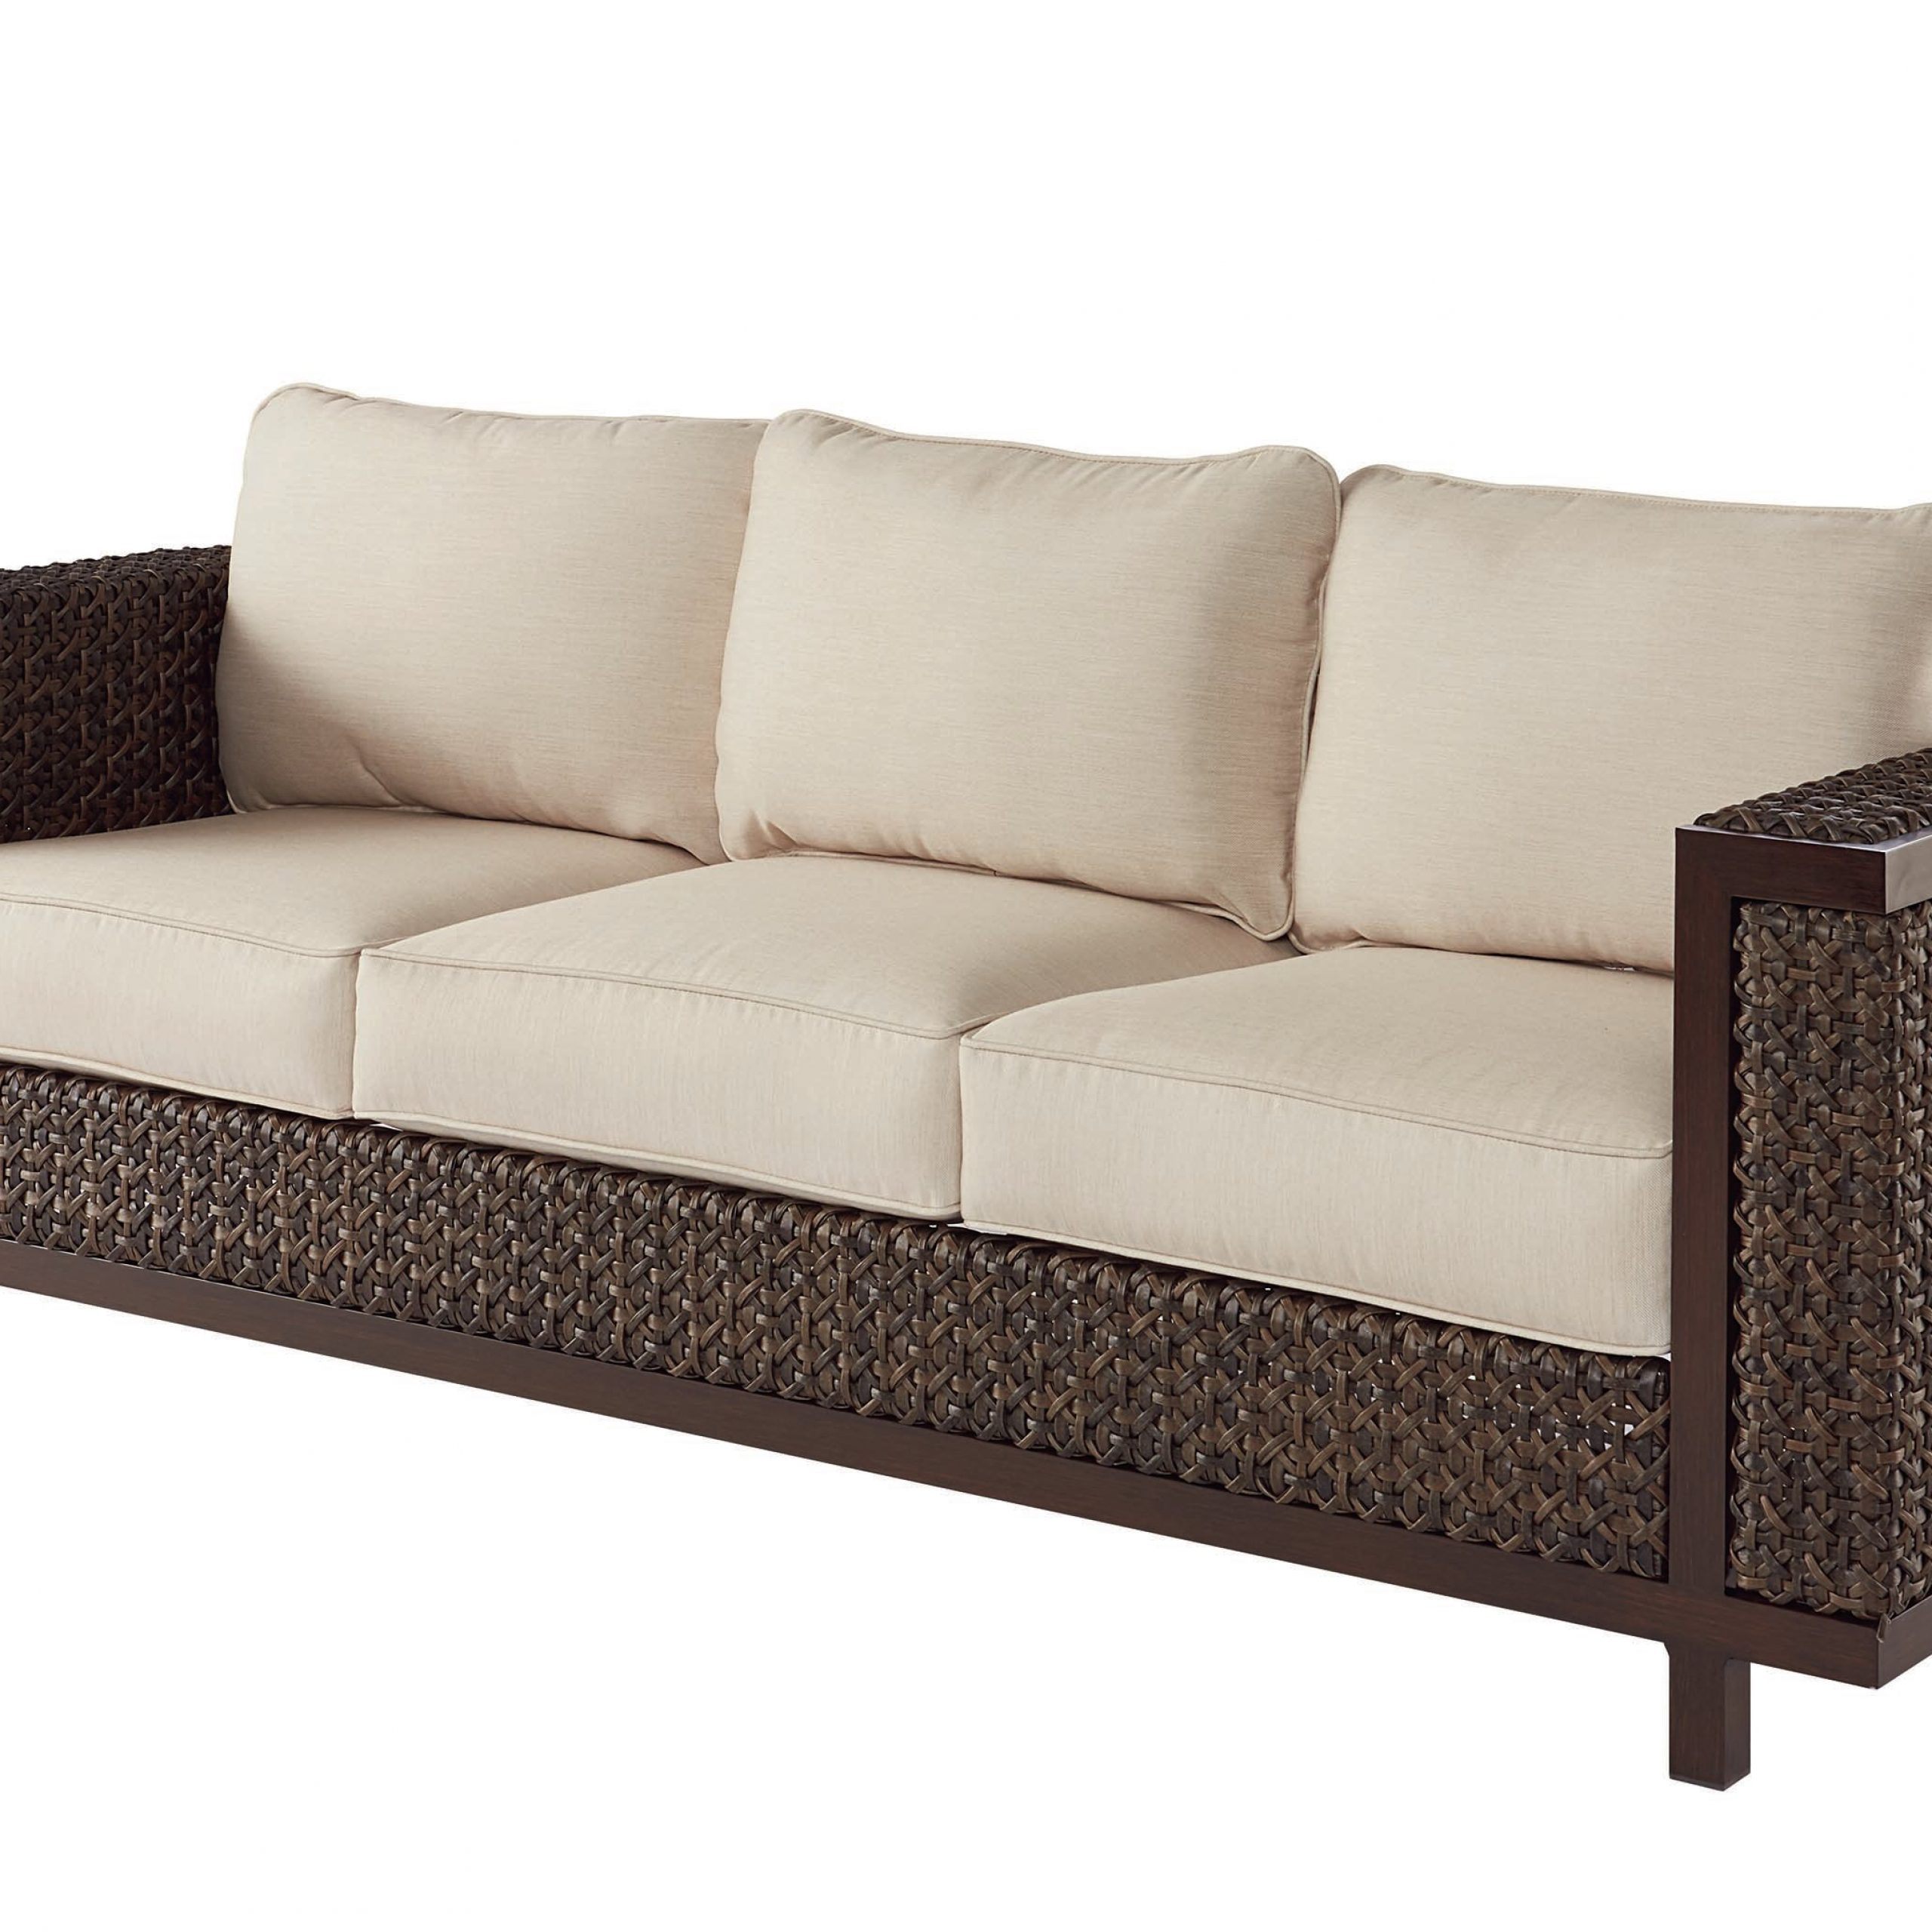 Featured Photo of Astrid Wicker Patio Sofas with Cushions